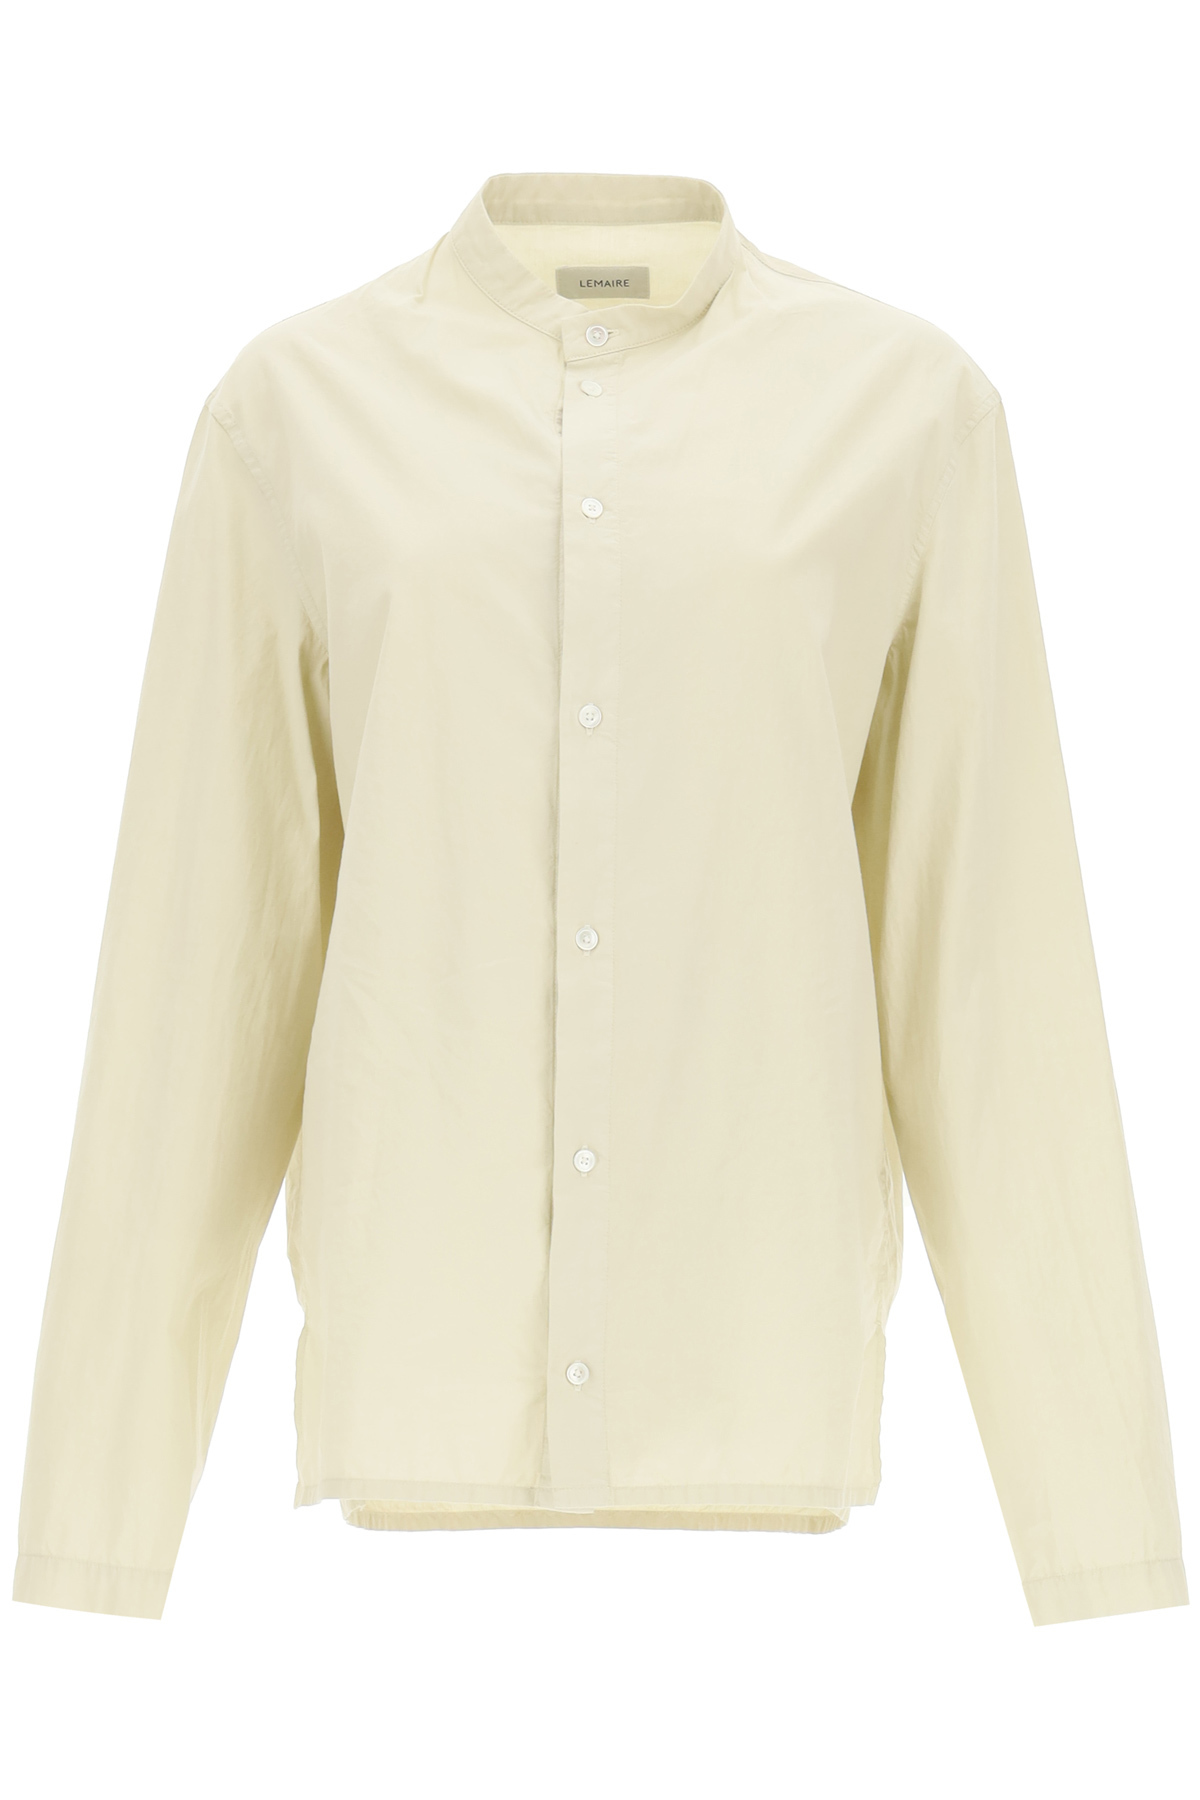 Lemaire UNISEX SHIRT WITH CONVERTIBLE NECKLINE